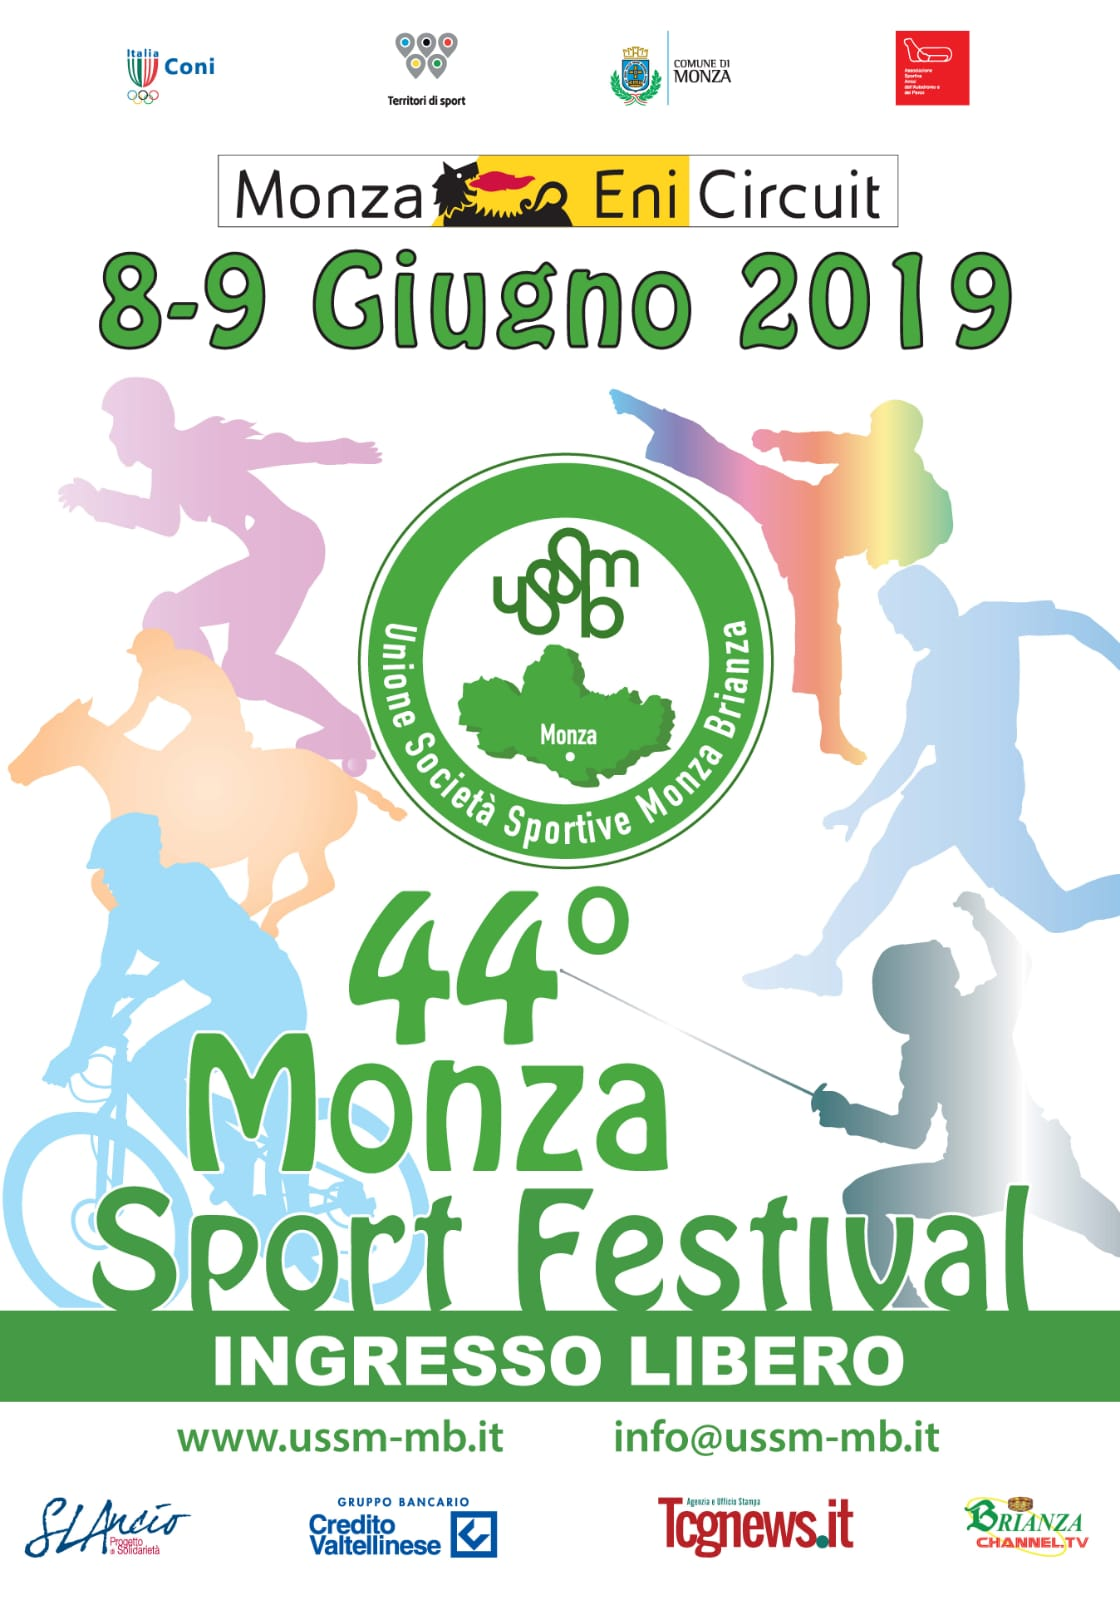 44° Monza Sport Festival - ABC DOG TEAM ci sarà!